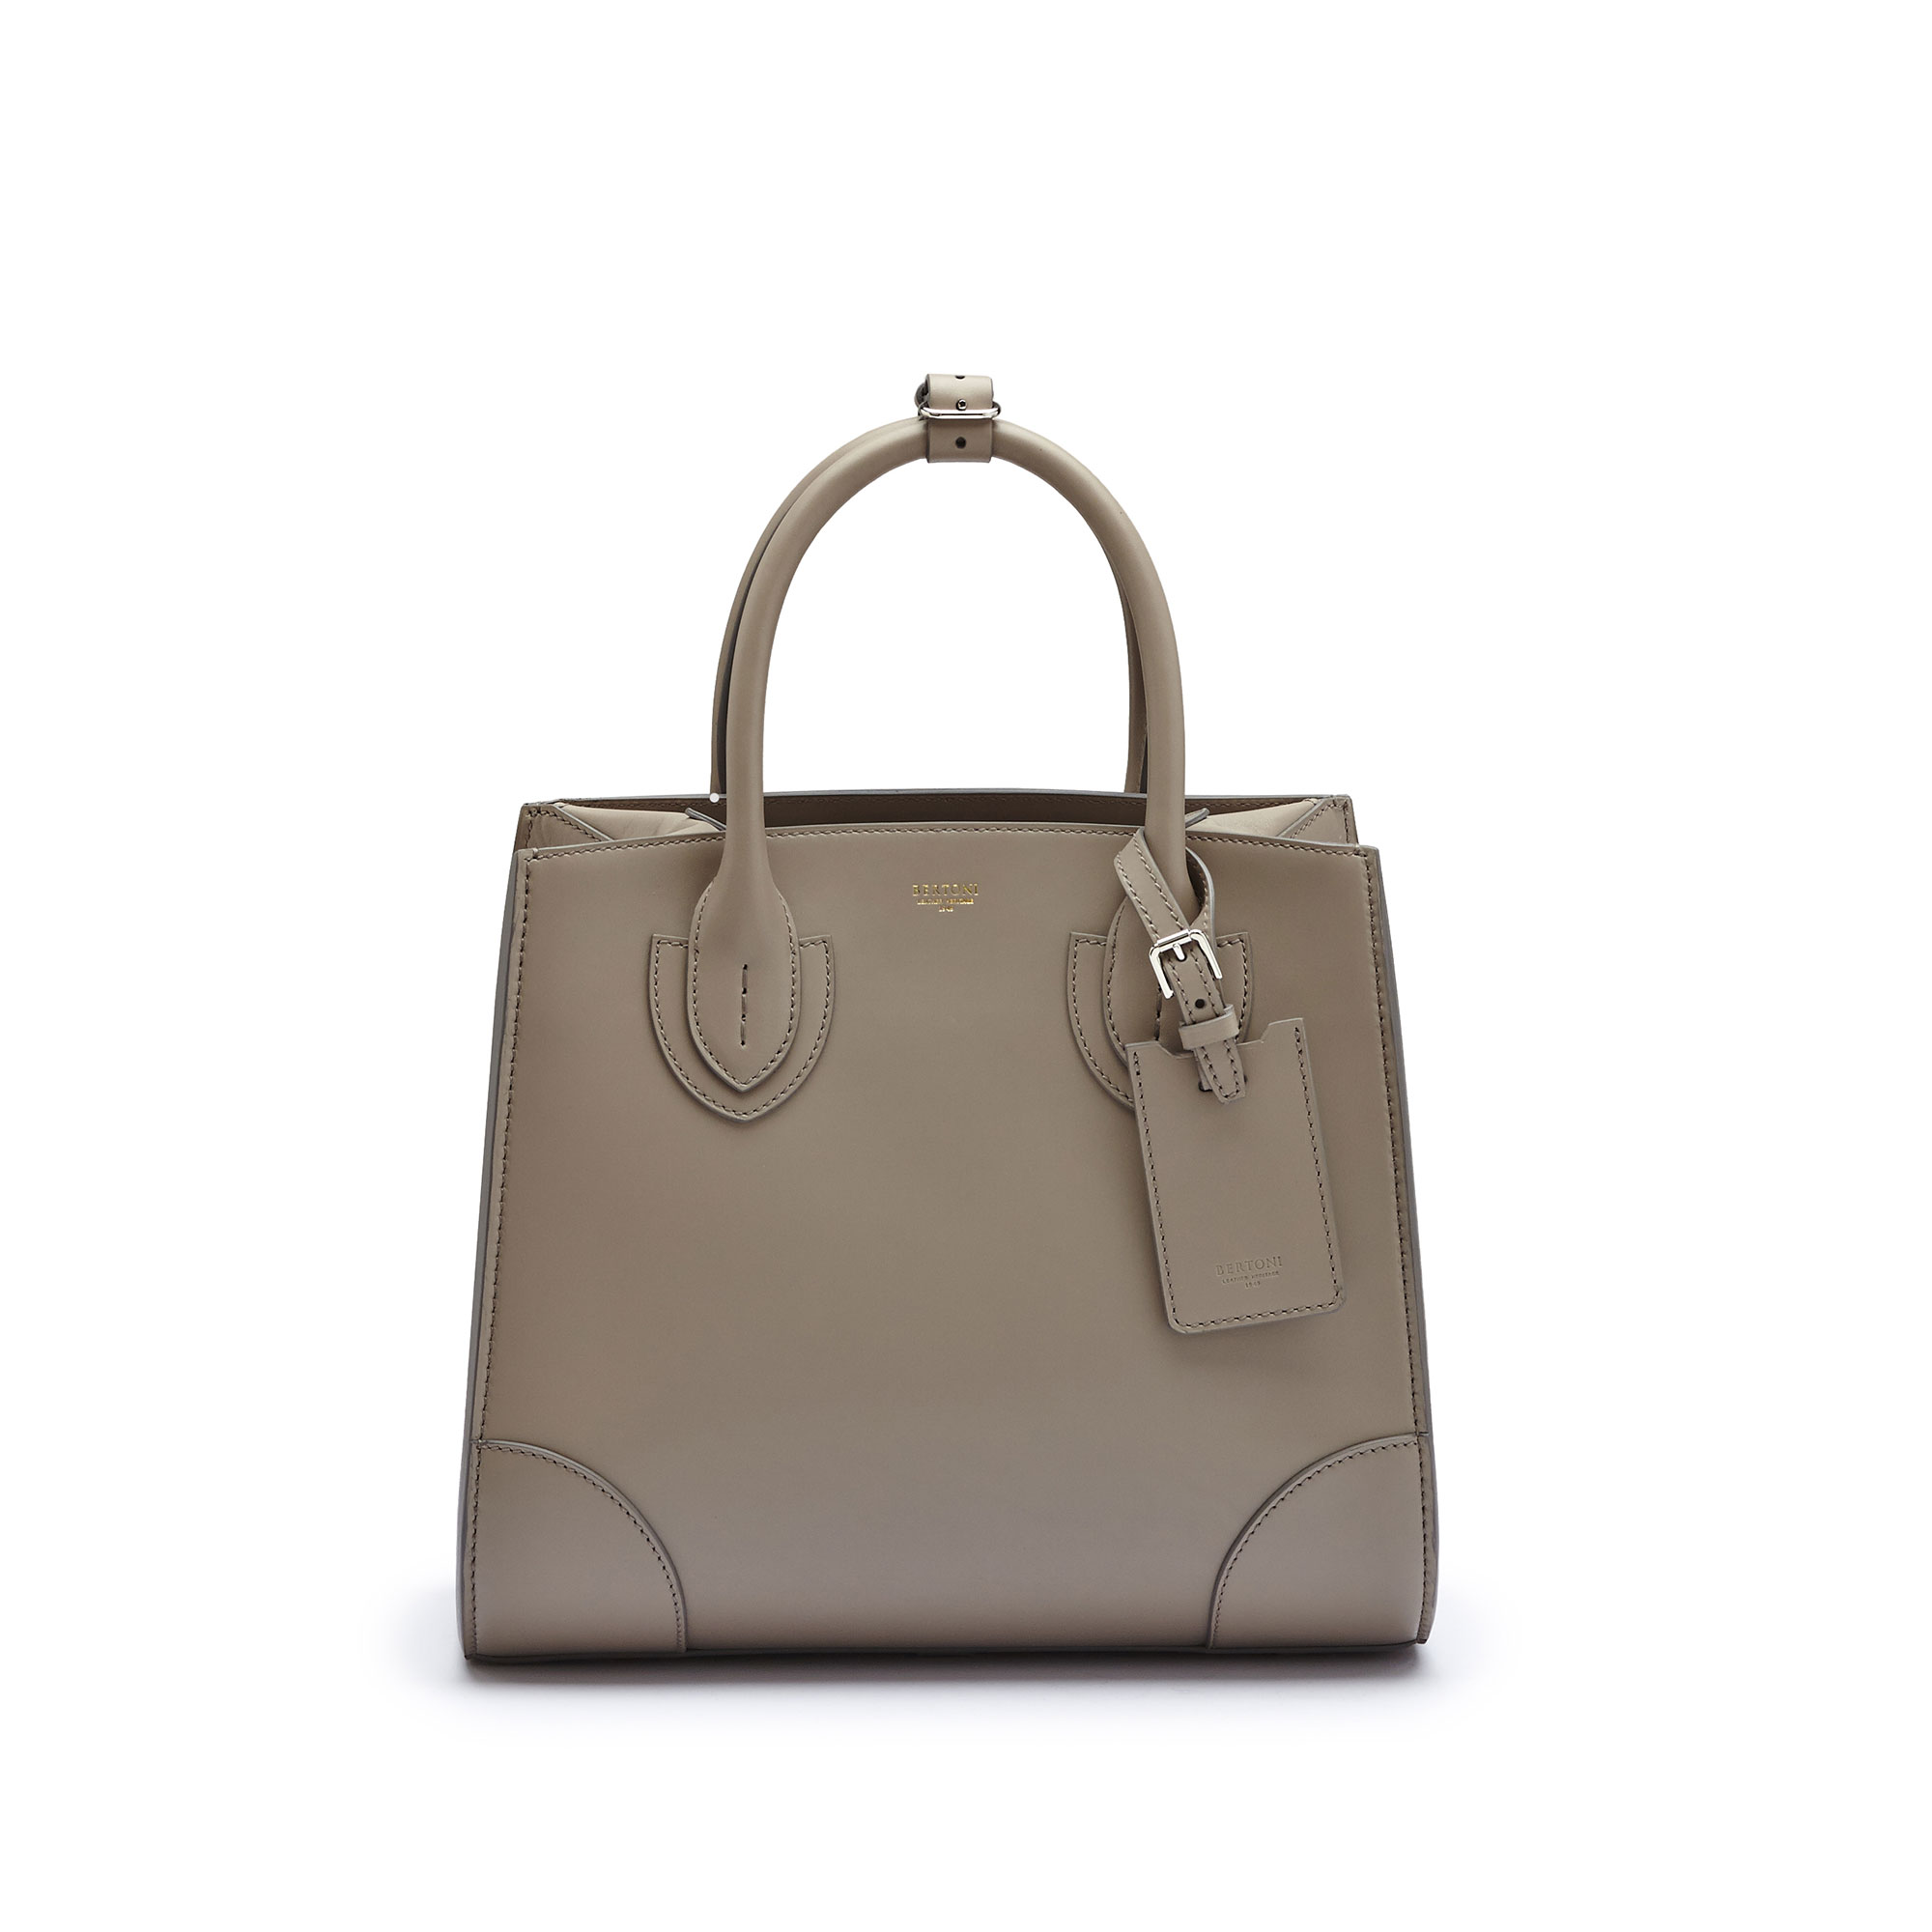 The taupe french calf Darcy medium bag by Bertoni 1949 02